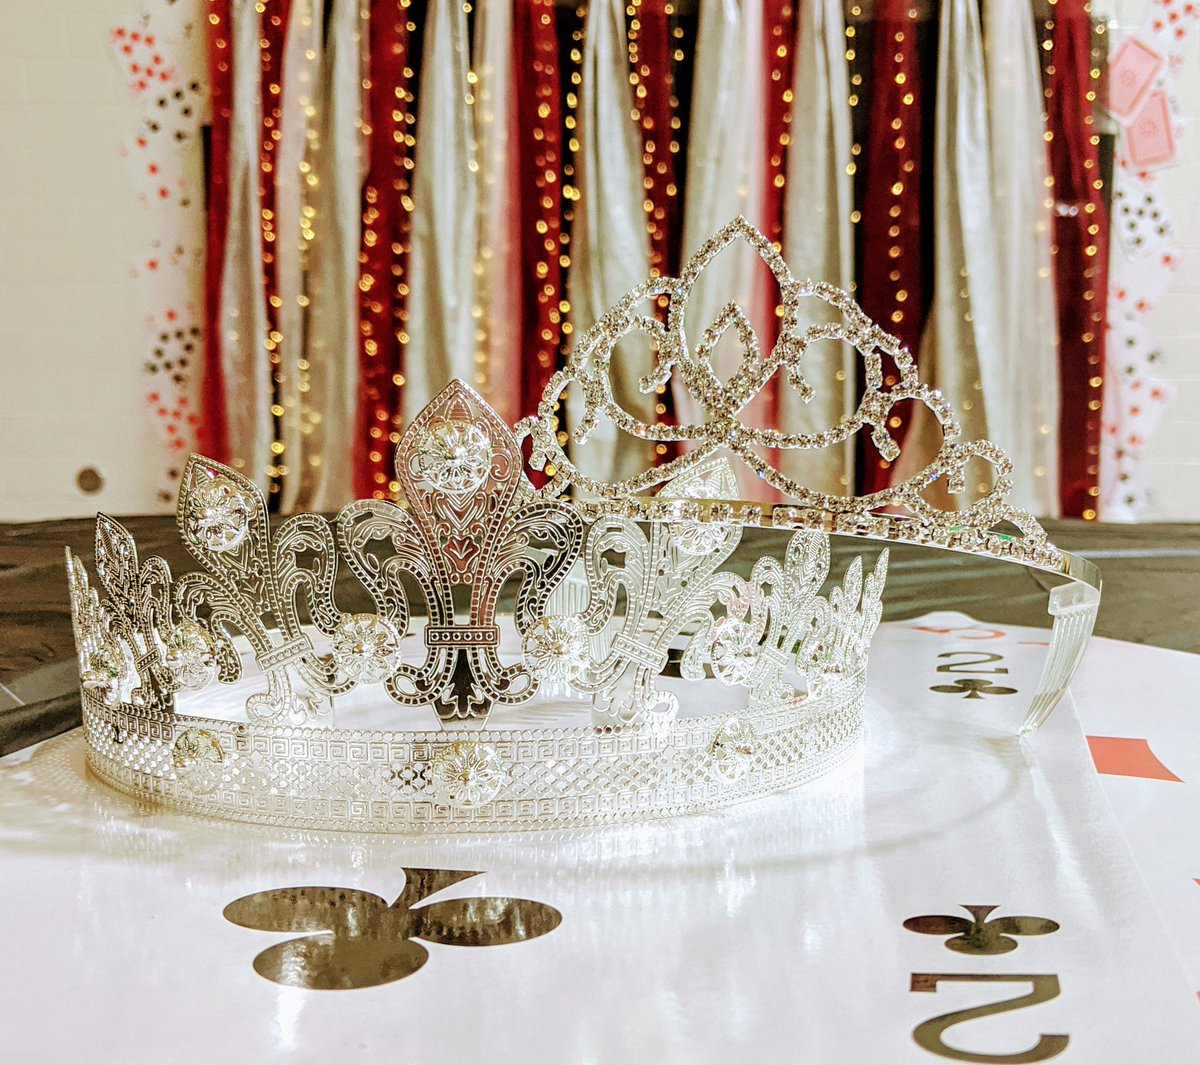 Who will be lucky enough to represent for Hollyball Royalty? #HB2019 #aliceinwonderland #kingandqueen https://t.co/1ZbZg7SklD